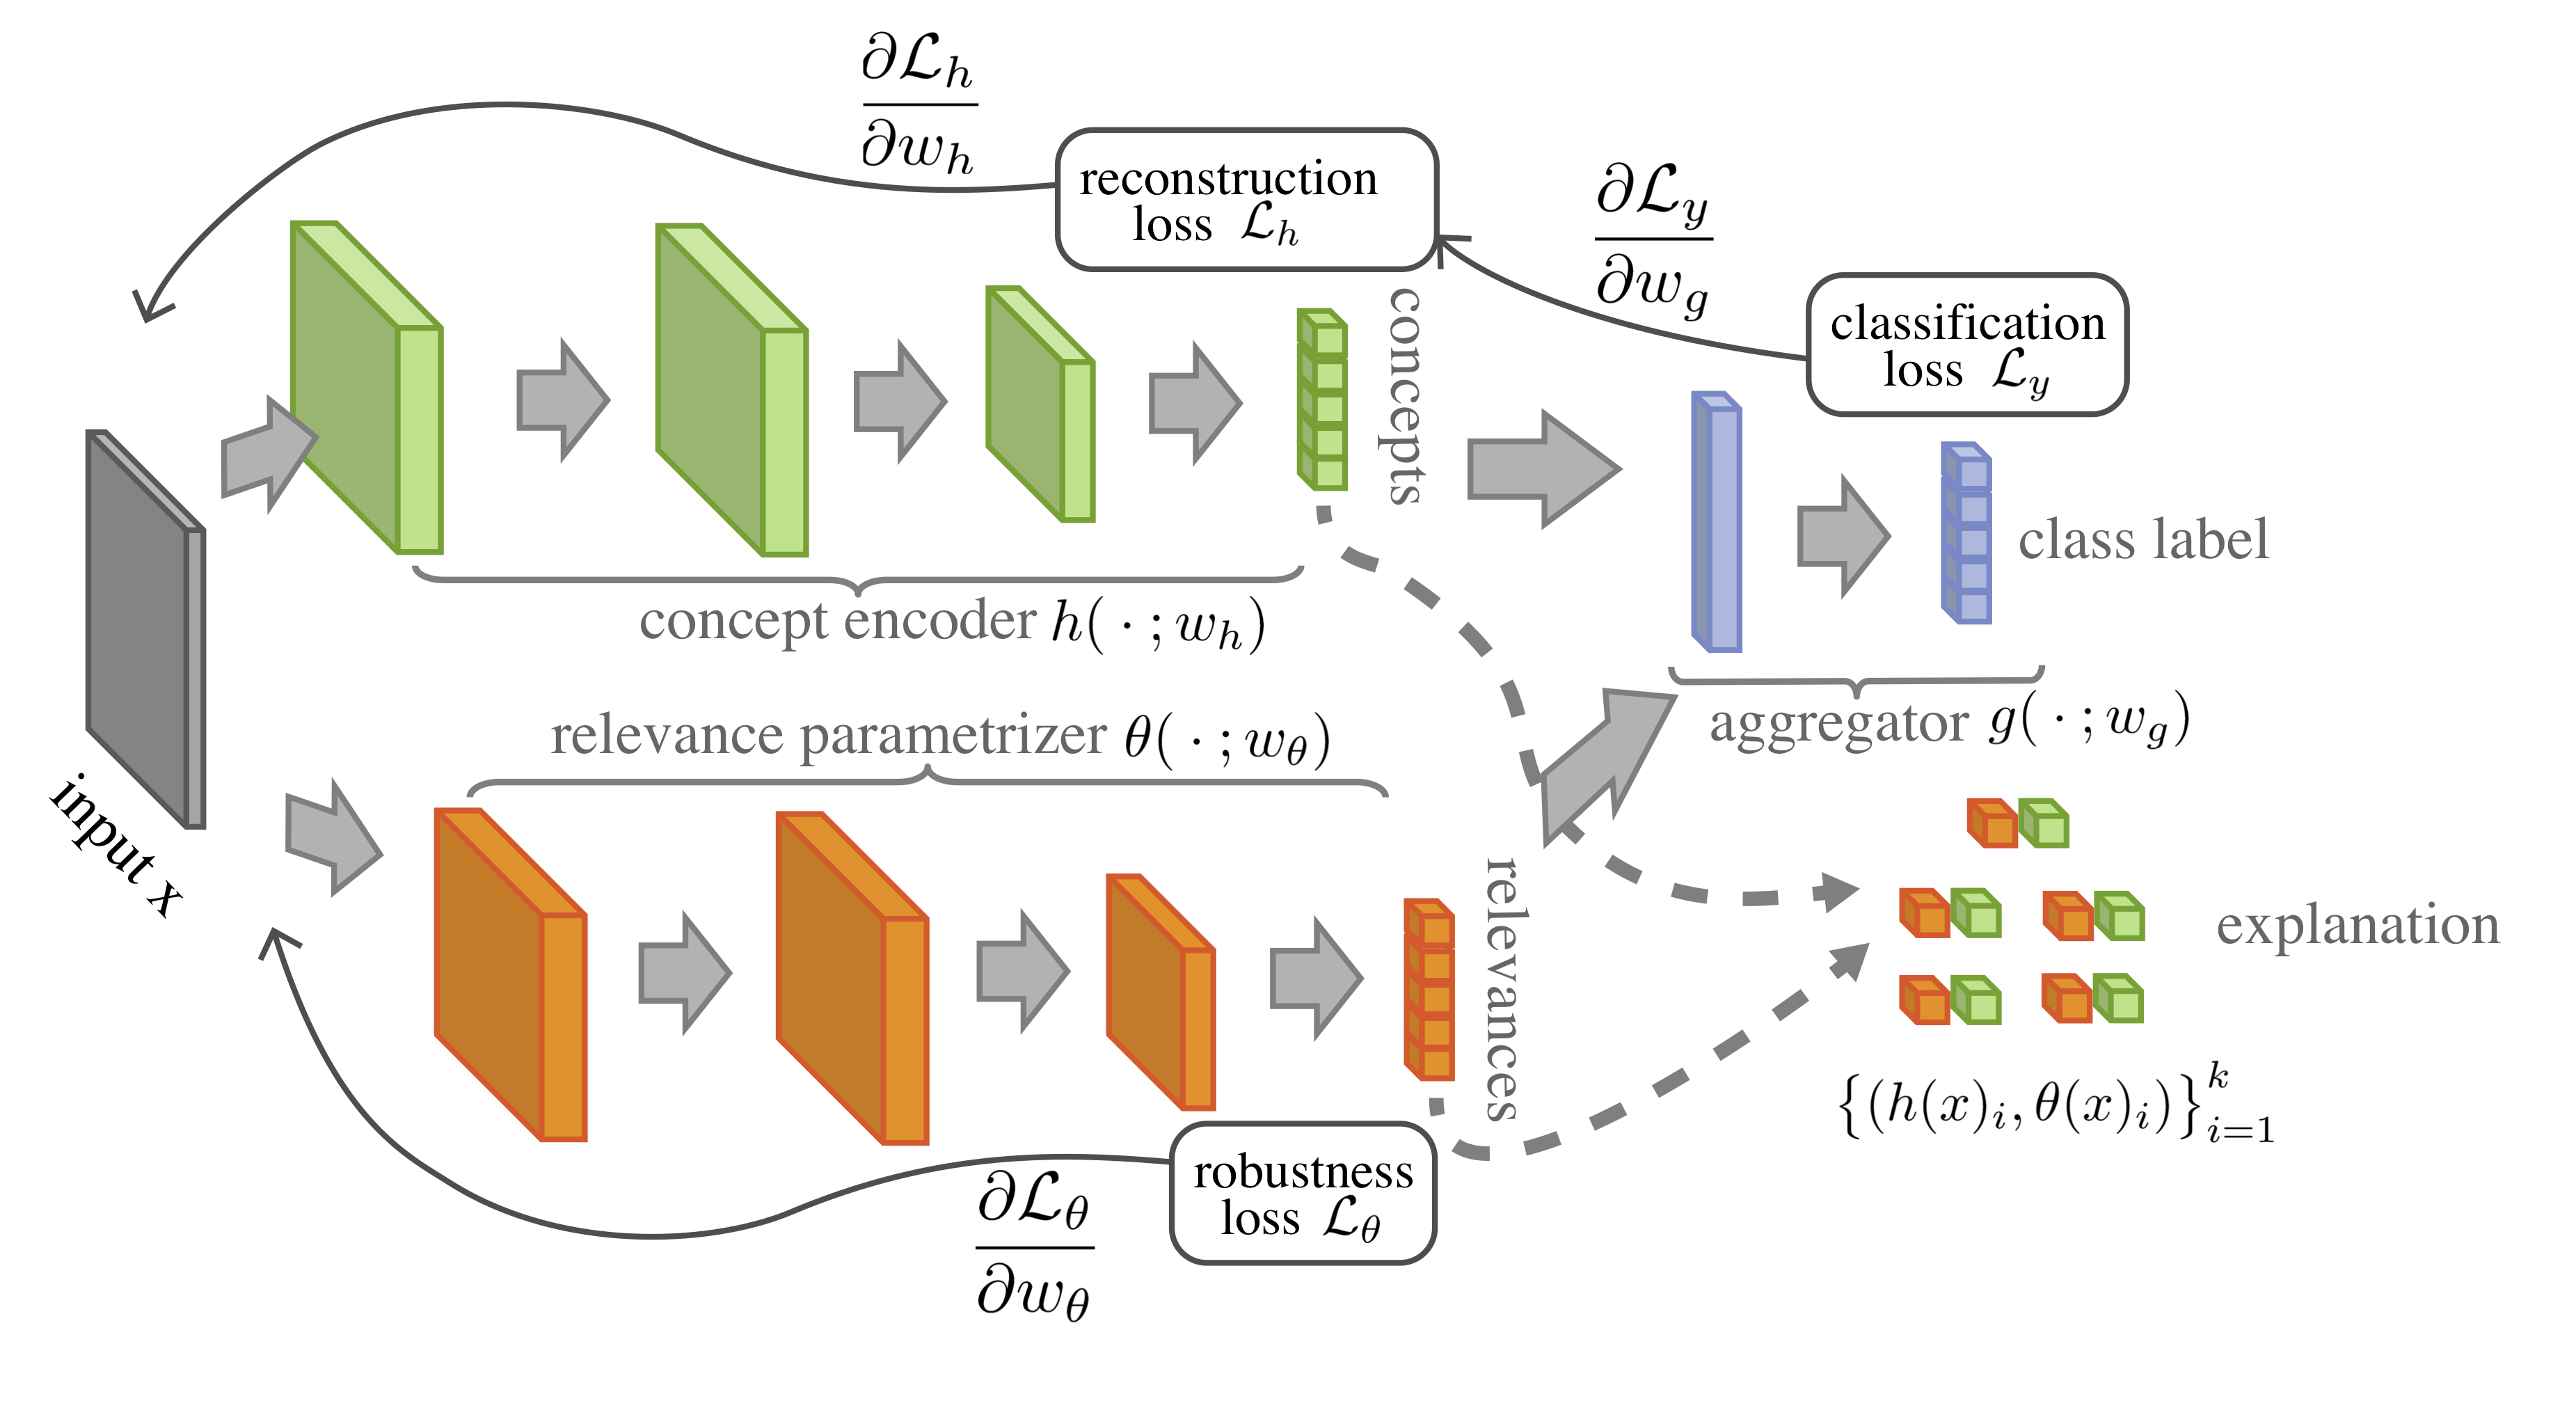 A Self-Explaining Neural Network consists of three components: a concept encoder (green) that transforms the input into a small set of interpretable basis features; an input-dependent parametrizer (orange) that generates relevance scores; and an aggregation function that combines to produce a prediction. The robustness loss on the parametrizer encourages the full model to behave locally as a linear function on $h(x)$ with parameters $\theta(x)$, yielding immediate interpretation of both concepts and relevances.